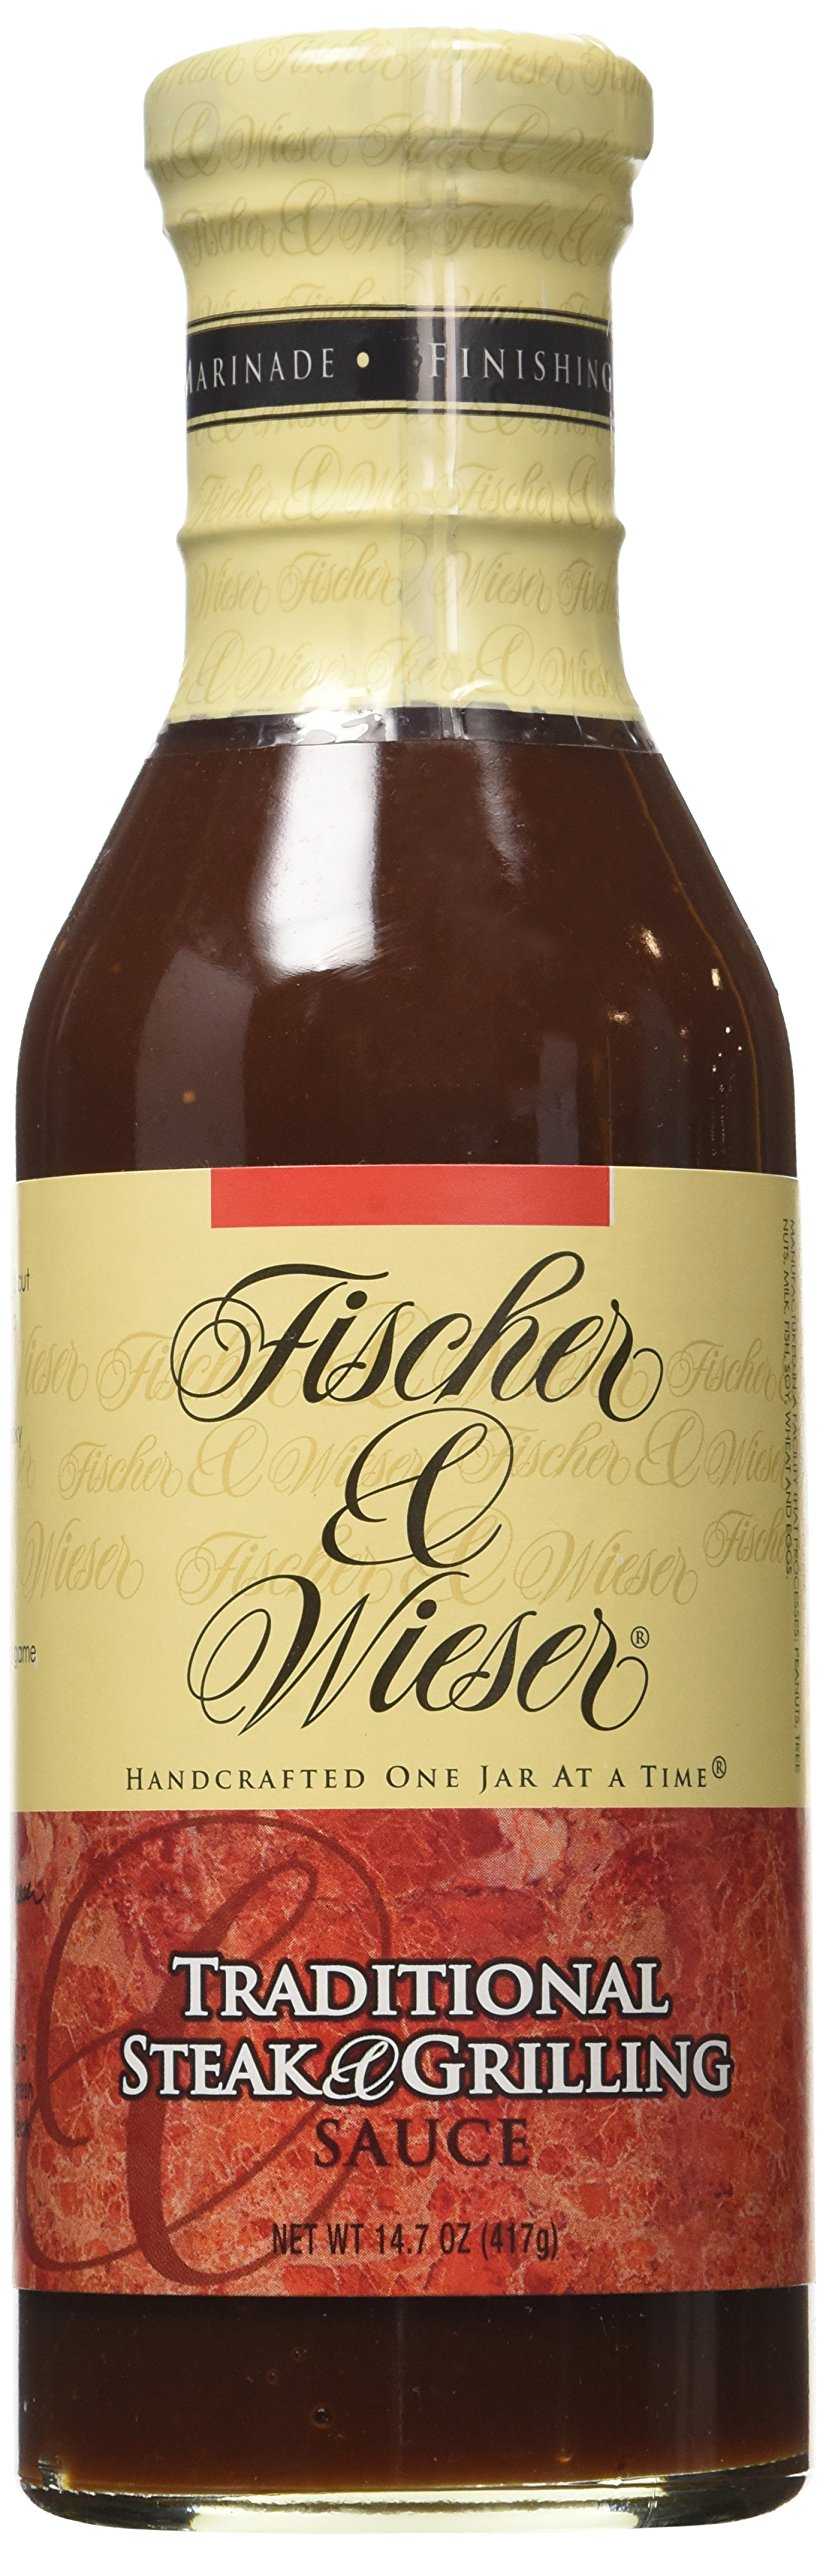 Fischer & Wieser Specialty Foods Traditional Steak and Grilling Sauce, 14.7 Ounce